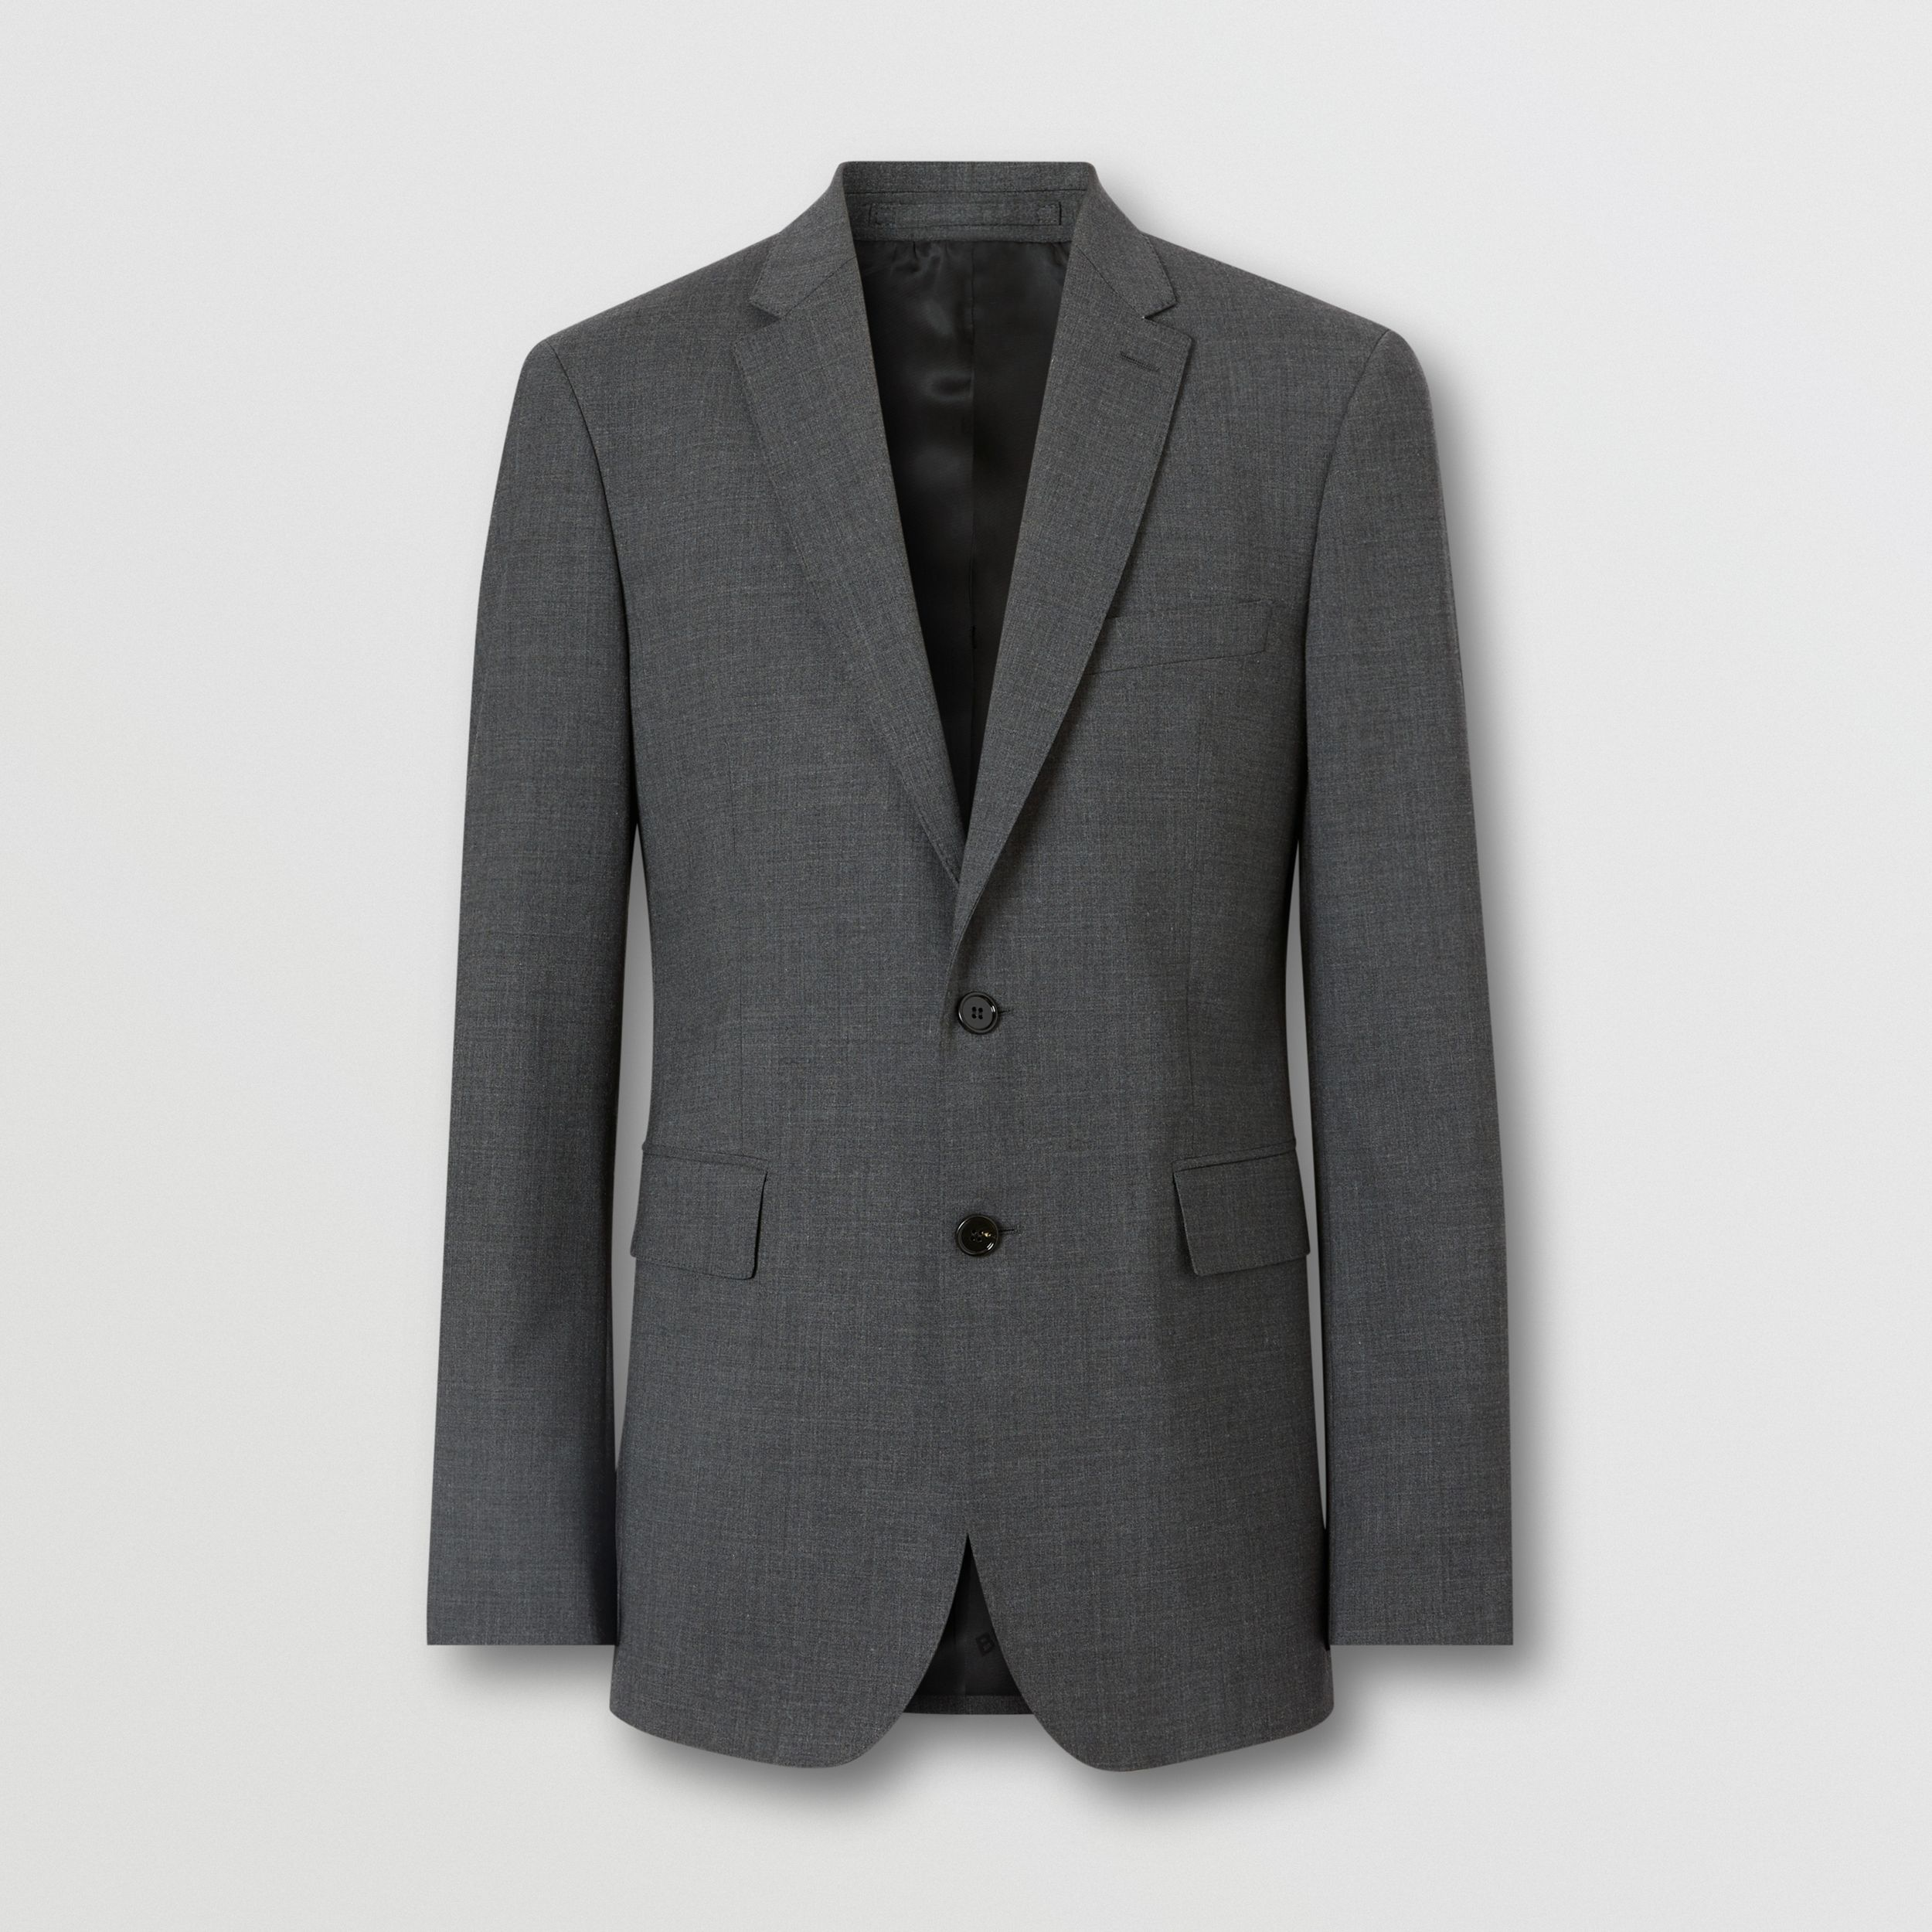 Slim Fit Stretch Wool Suit in Cloud Grey Melange - Men | Burberry - 4